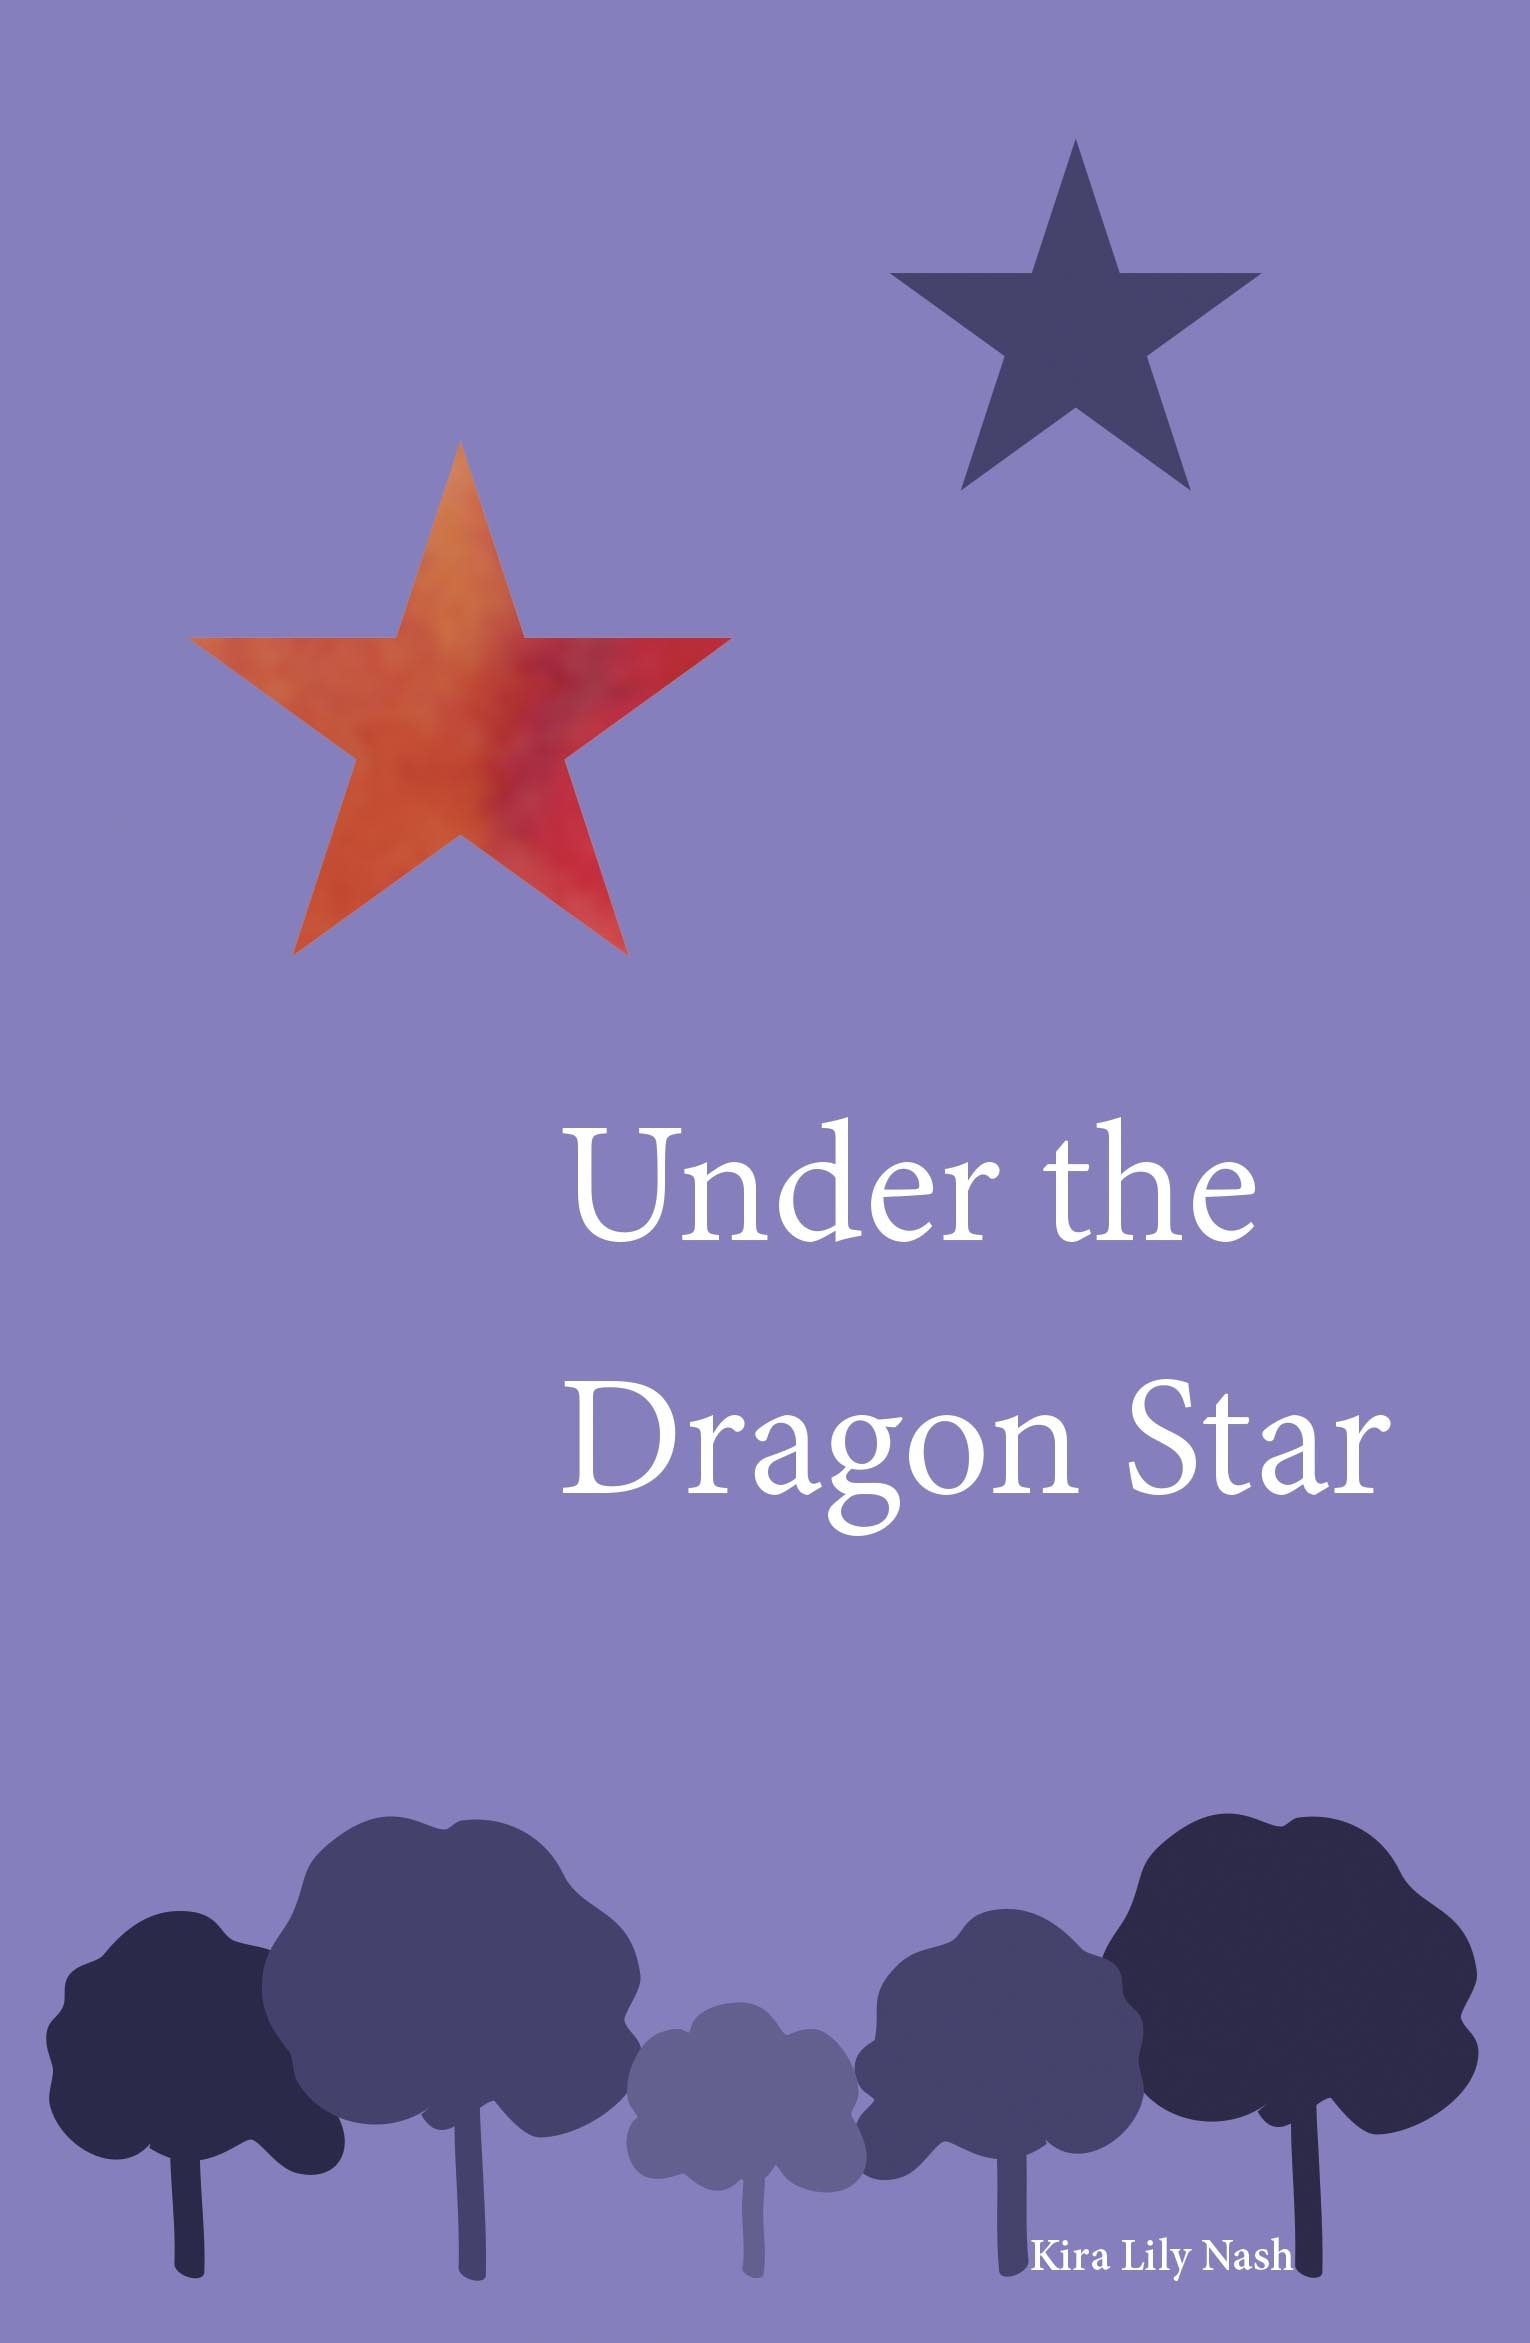 UNDER THE DRAGON STAR